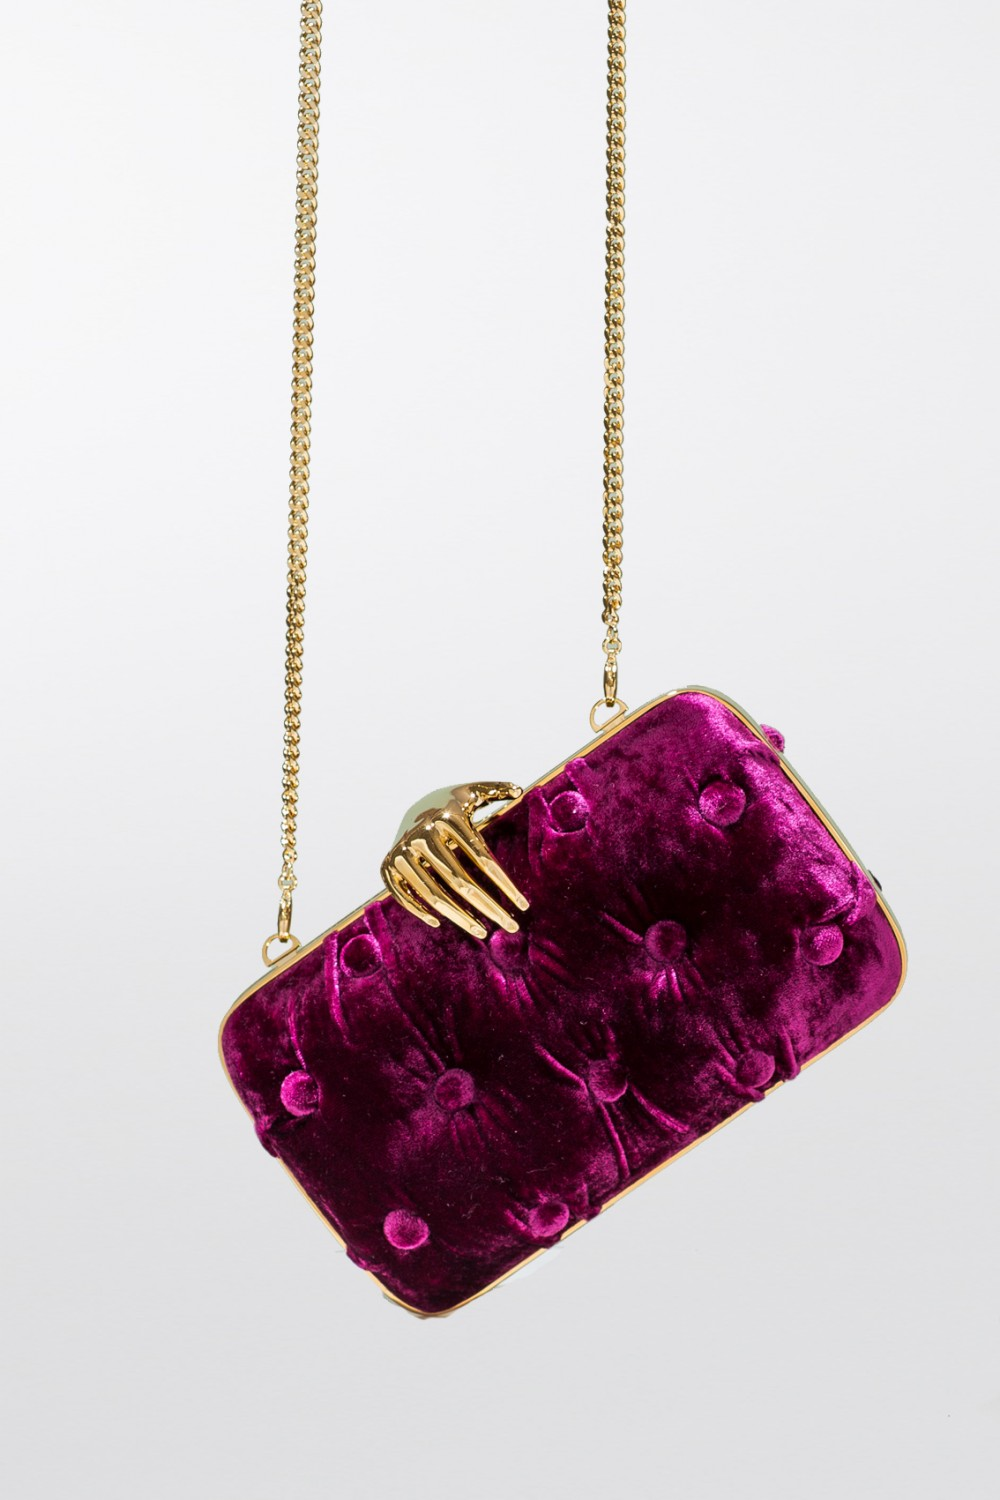 Purple velvet clutch with hand closure